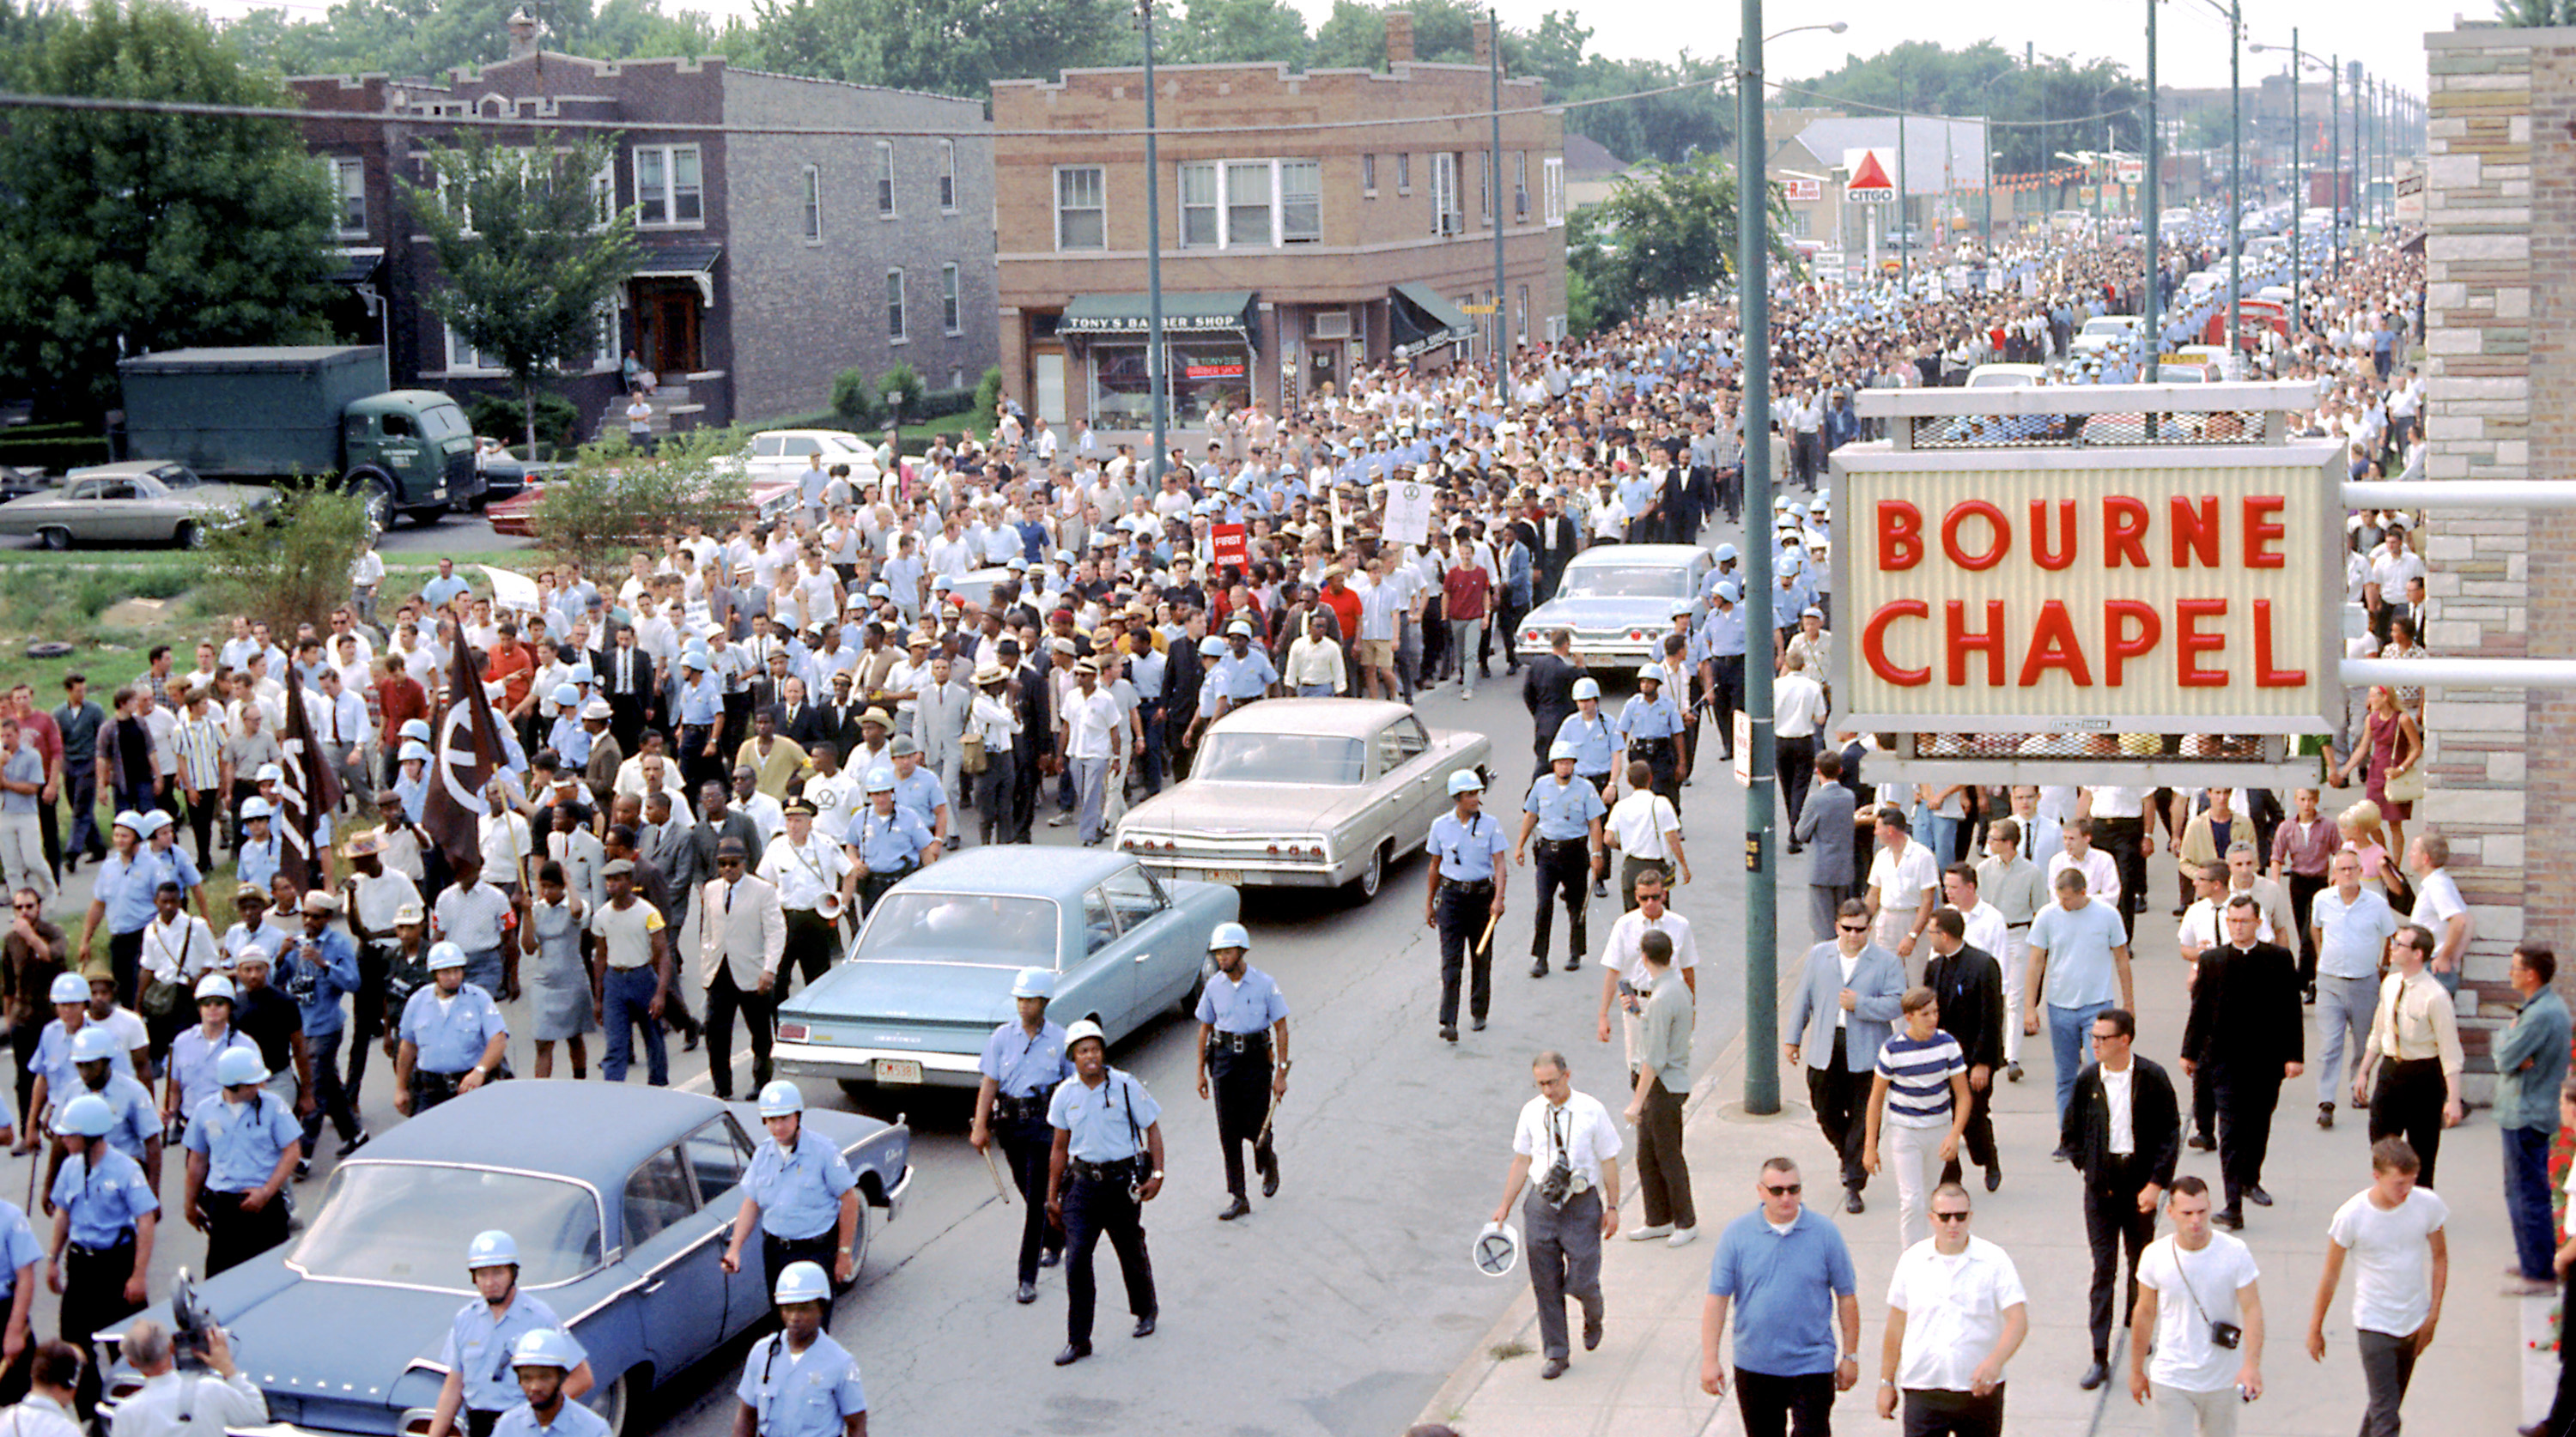 A Chicago Freedom Movement march down South Kedzie Avenue on August 5, 1966.      (Collection of the Smithsonian National Museum of African American History and Culture, Gift of Bernard J. Kleina and Susan Keleher Kleina, © Bernard J. Kleina)